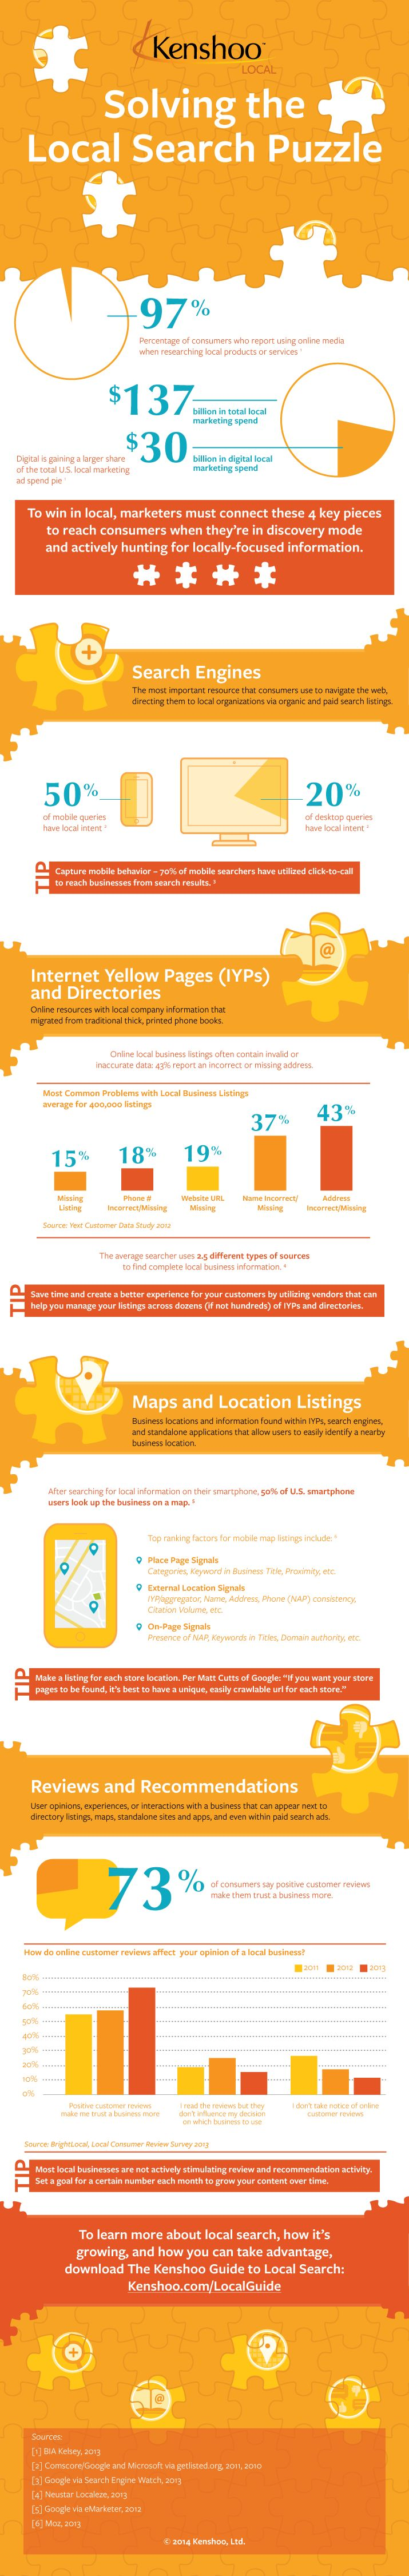 Stimulating Interaction and New #Business through #LocalSearch - #SEO #infographic